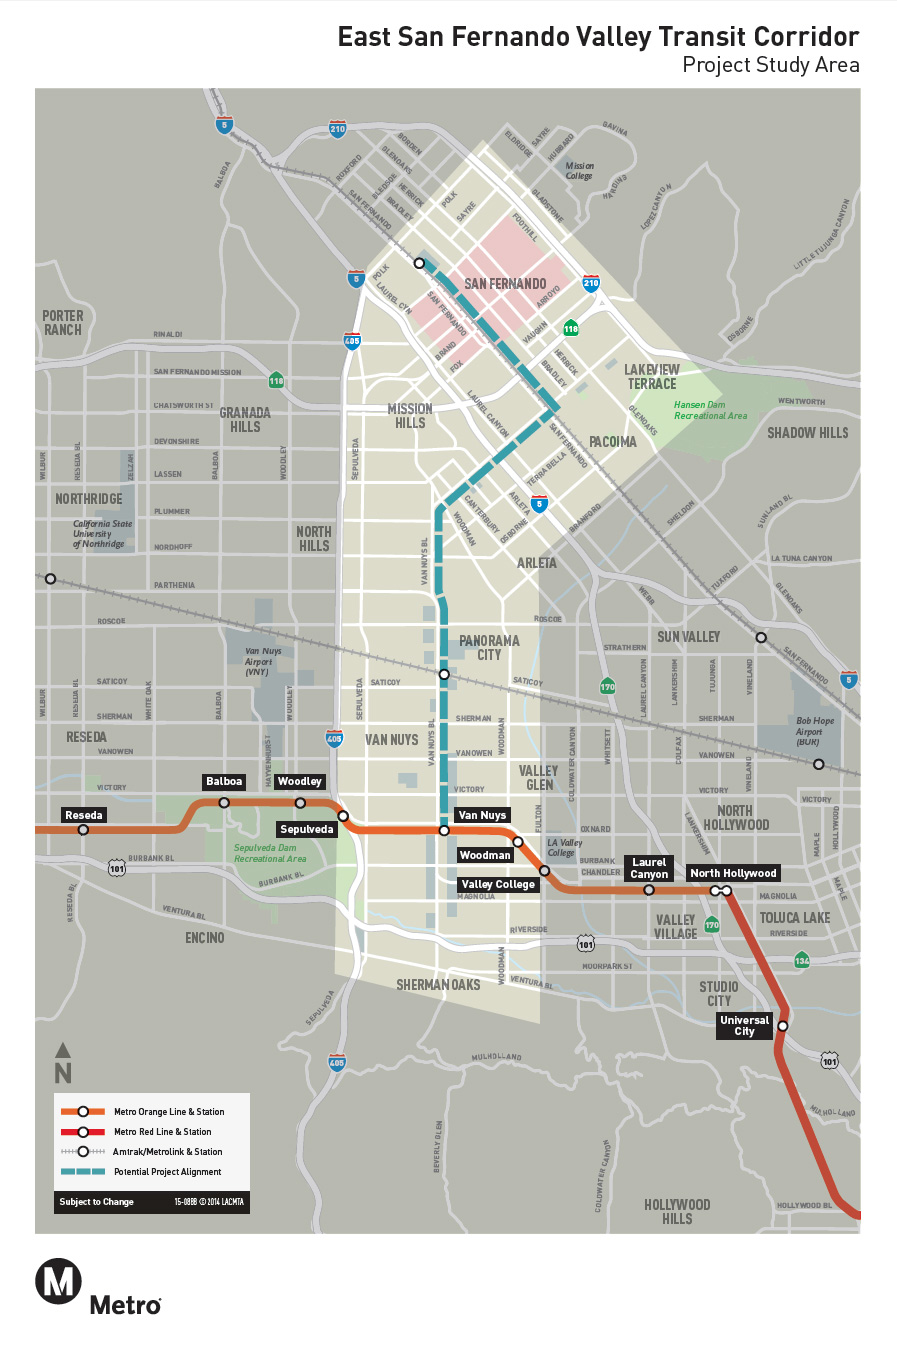 East Valley Transit Corridor